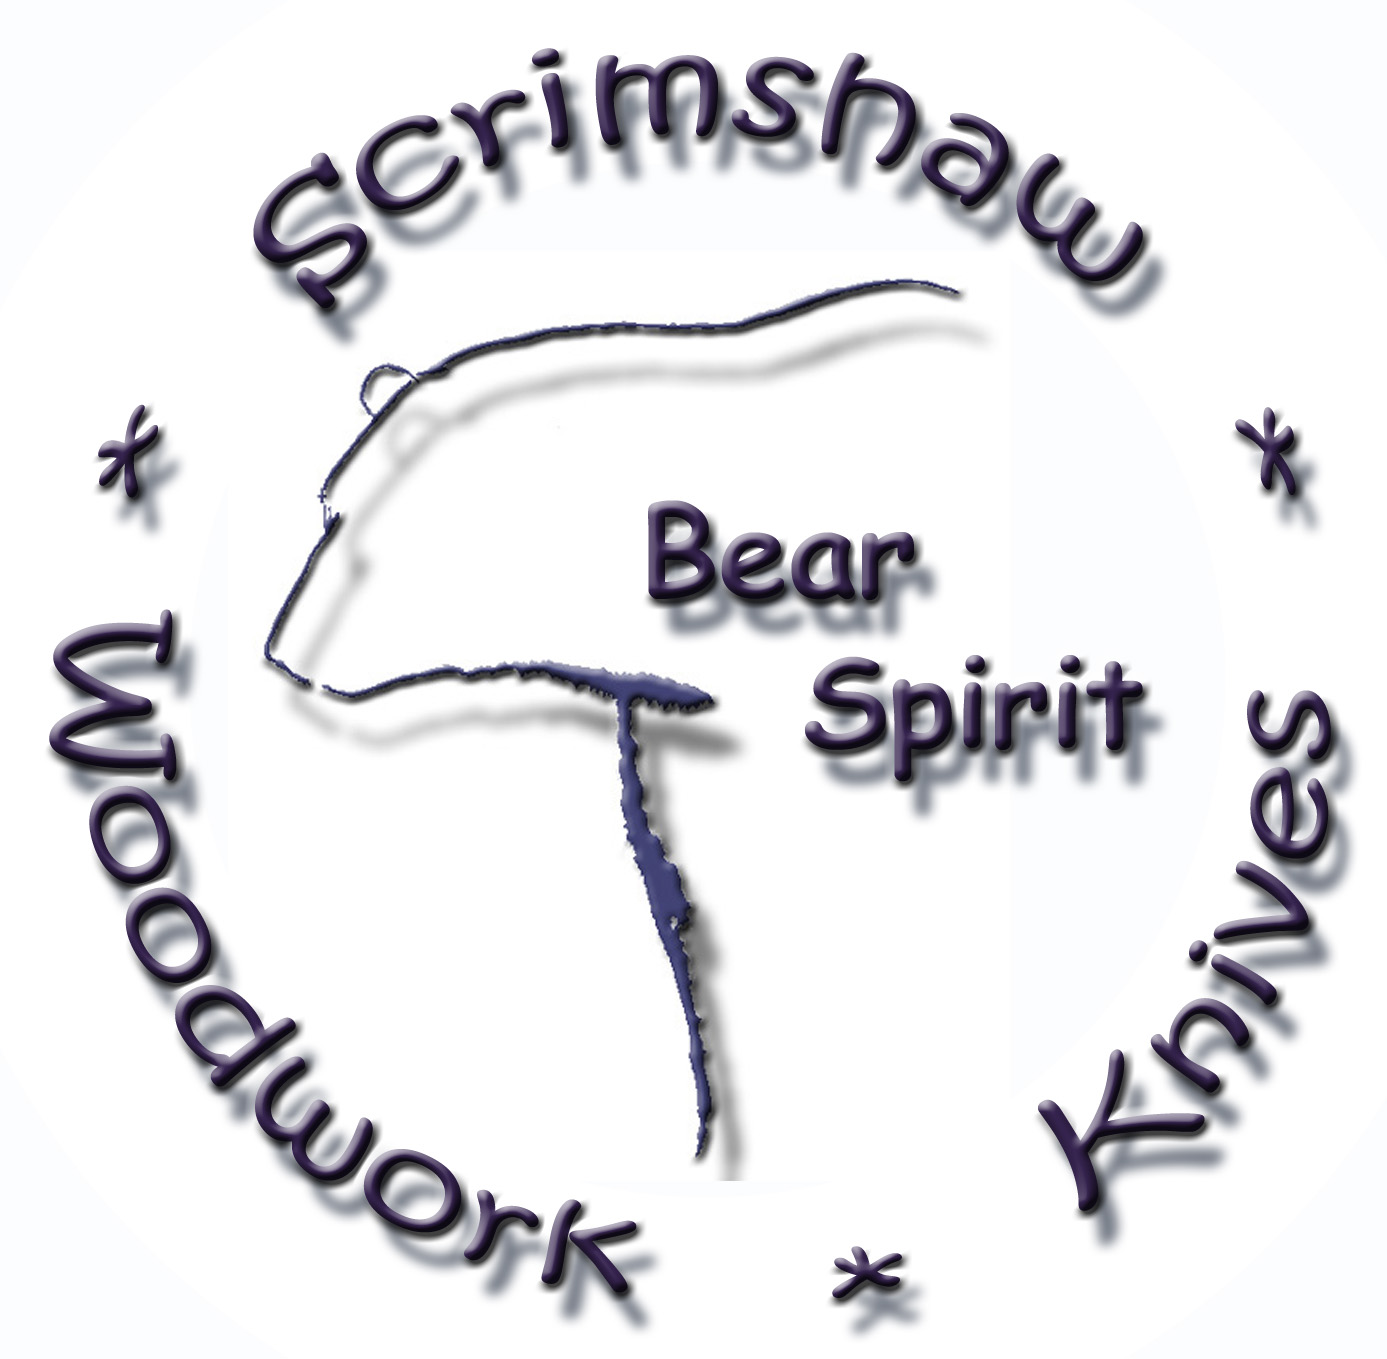 BearSpirit